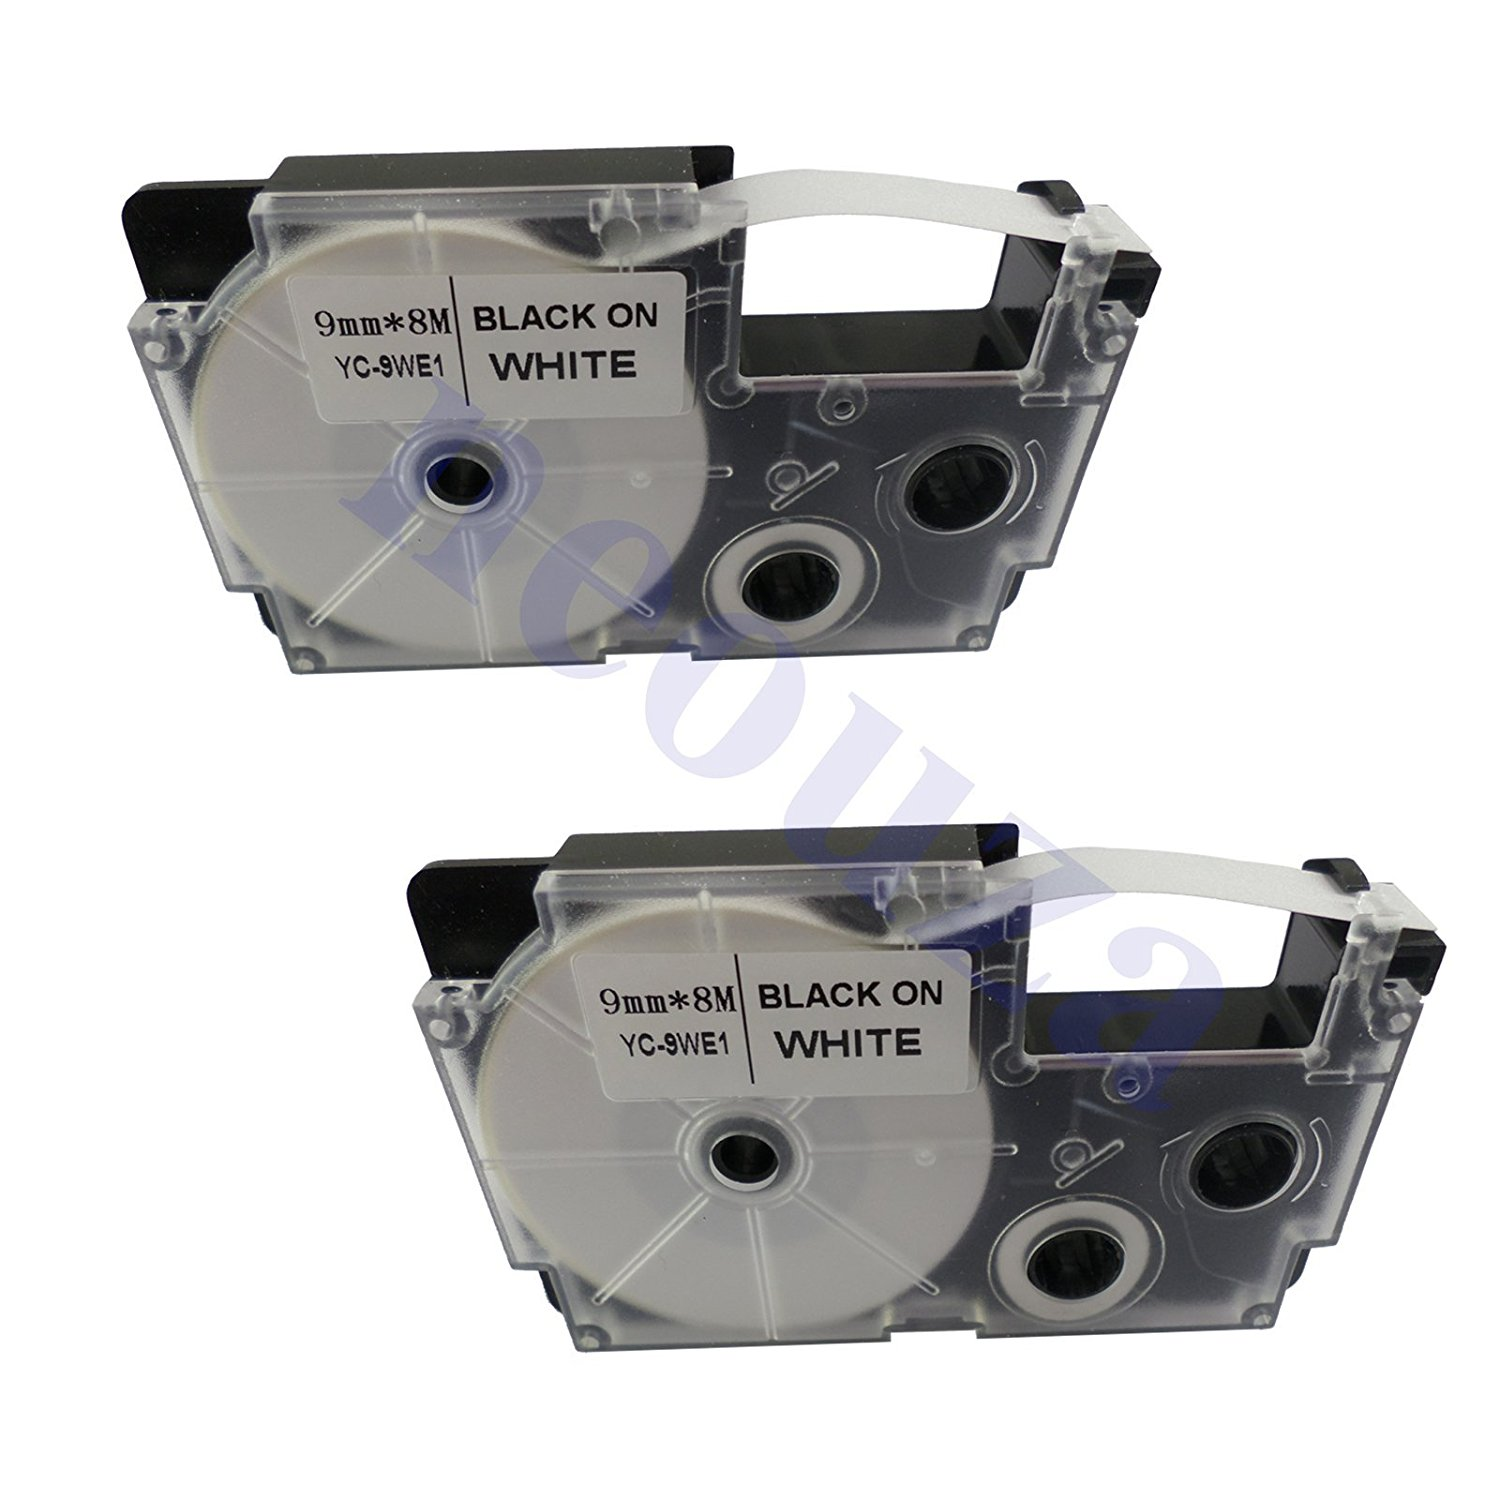 "NEOUZA 2PK Compatible for Casio EZ-Label Tape 9mm x 8m 0.35"" x 26' LABEL IT! (XR-9WE2S Black on White)"